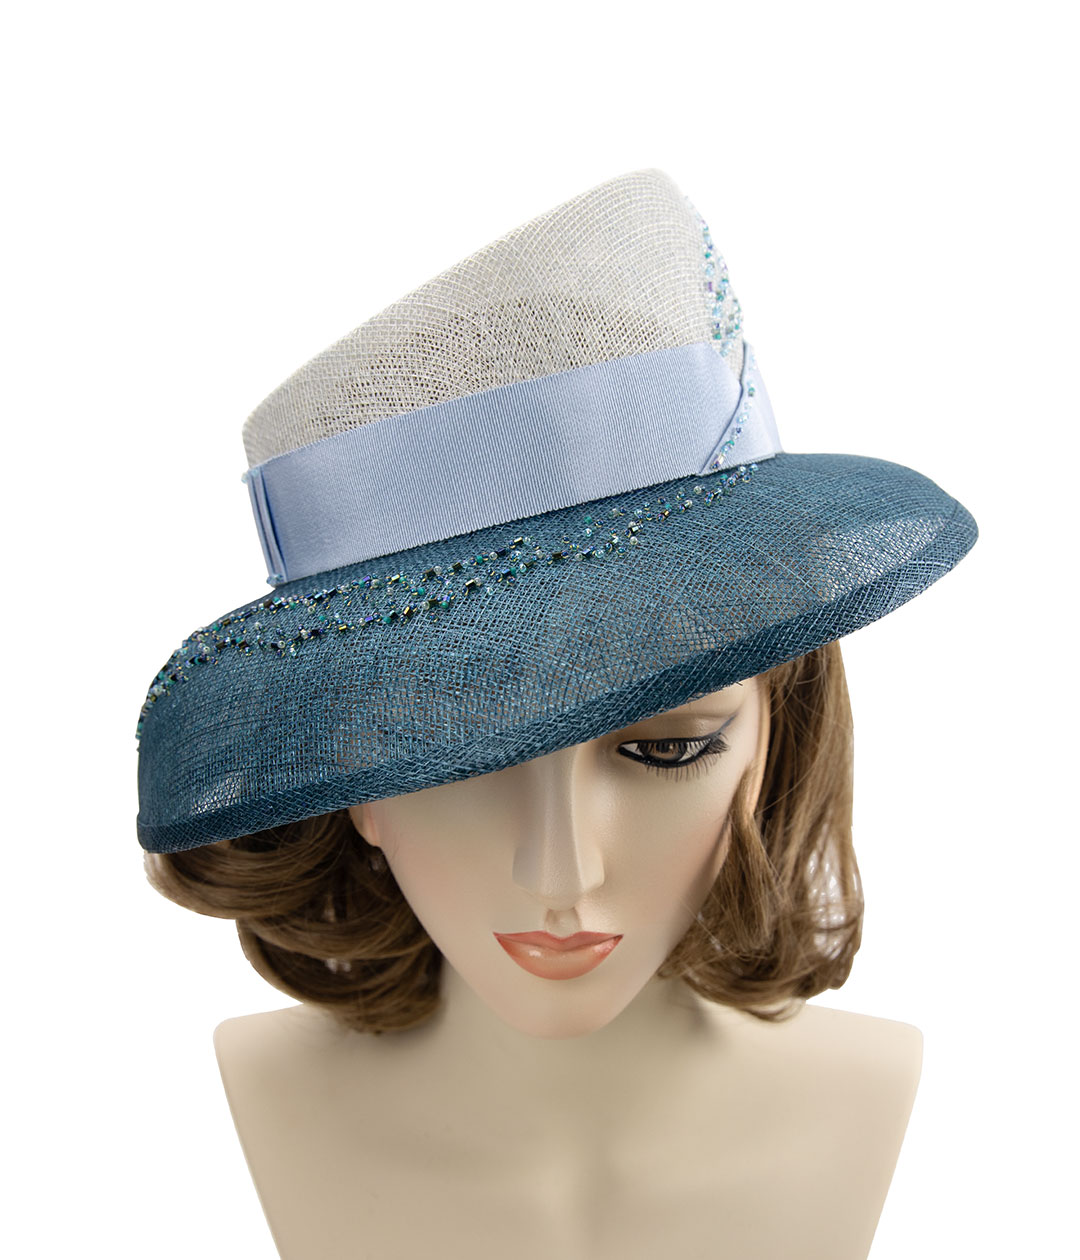 Hand-beaded blue hat in sinamay straw.